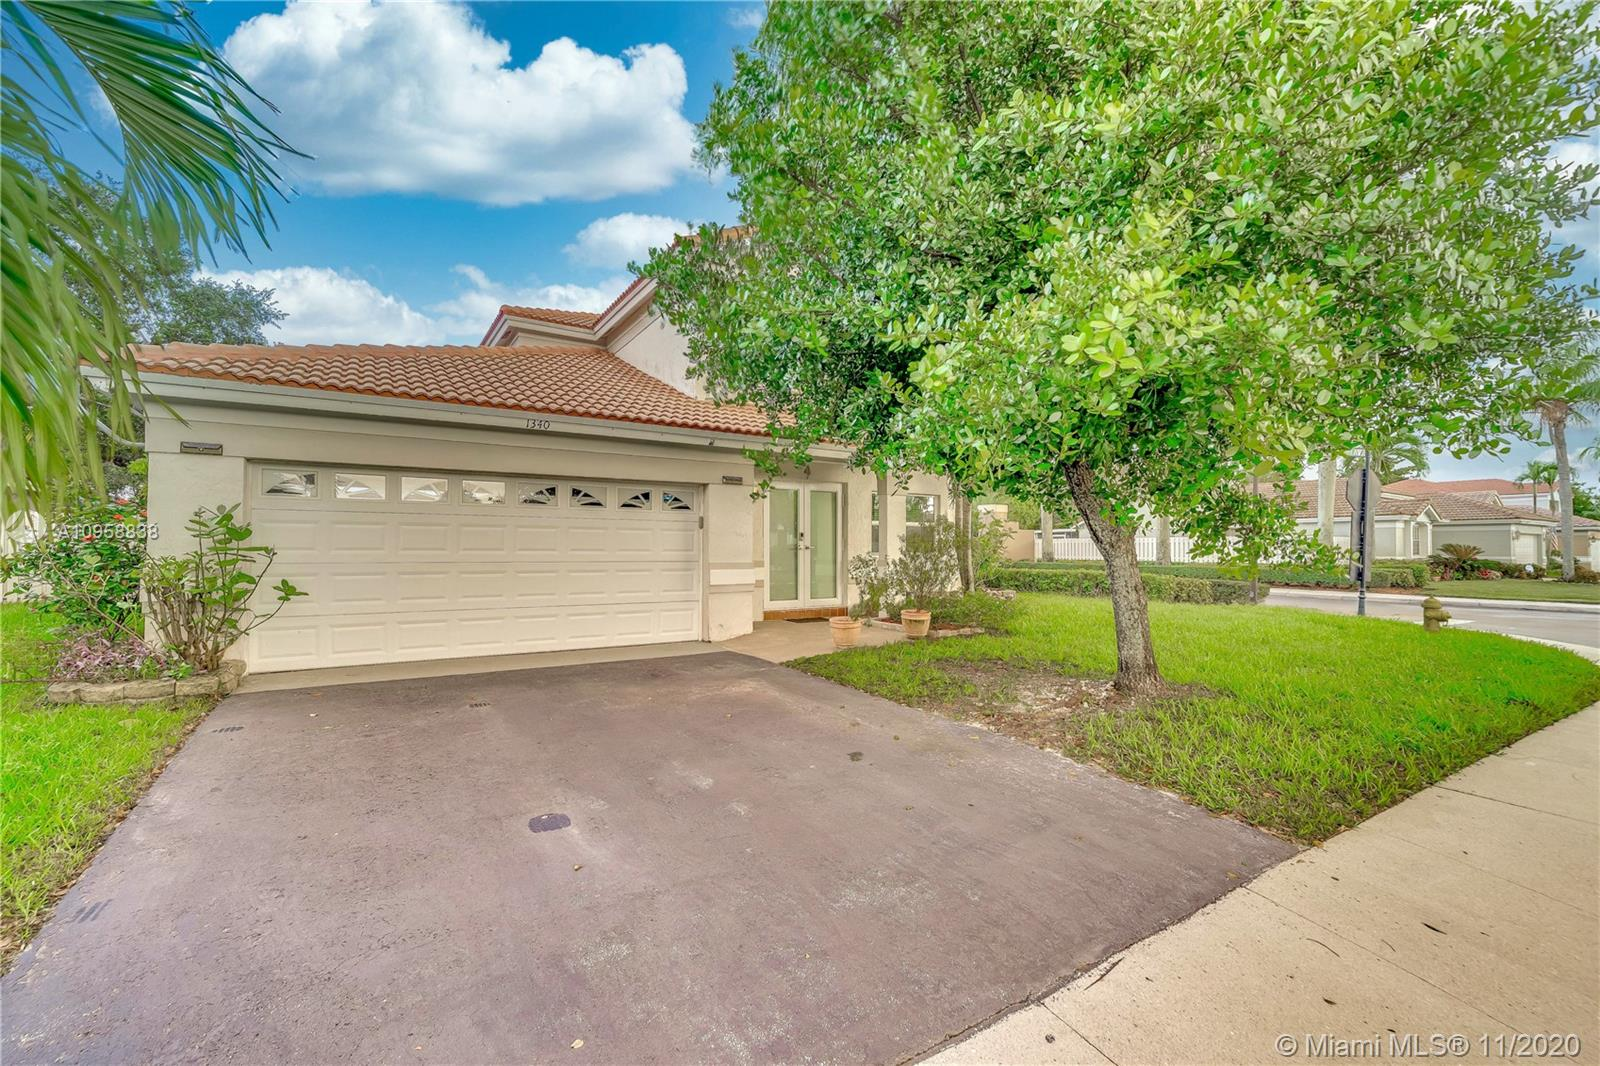 Fantastic 4 bedroom 2.5 bathroom home with almost 2100 sq ft under air in Residences of Sawgrass Mills!! Oversized 9800+ sq ft corner lot. Impact glass windows & doors throughout! Large living space w/volume ceiling and tile flooring on first floor. Open kitchen featuring white cabinetry, gas range w/eat in breakfast area. Master bedroom on first floor with walk in closet! Updated half bath. 3 bedrooms plus loft/storage area upstairs w/ renovated full bath w/double vanity. Tile roof replaced in 2006.AC unit 2018 w/brand new coil. Nest thermostat! Water heater 2018. Square D electrical panel. Security cameras! Great location to major highways  595, I75 & Sawgrass Expswy. Sawgrass Mills mall, airport and so much more. Walking distance to highly regarded Sawgrass Elementary and Flamingo Park.